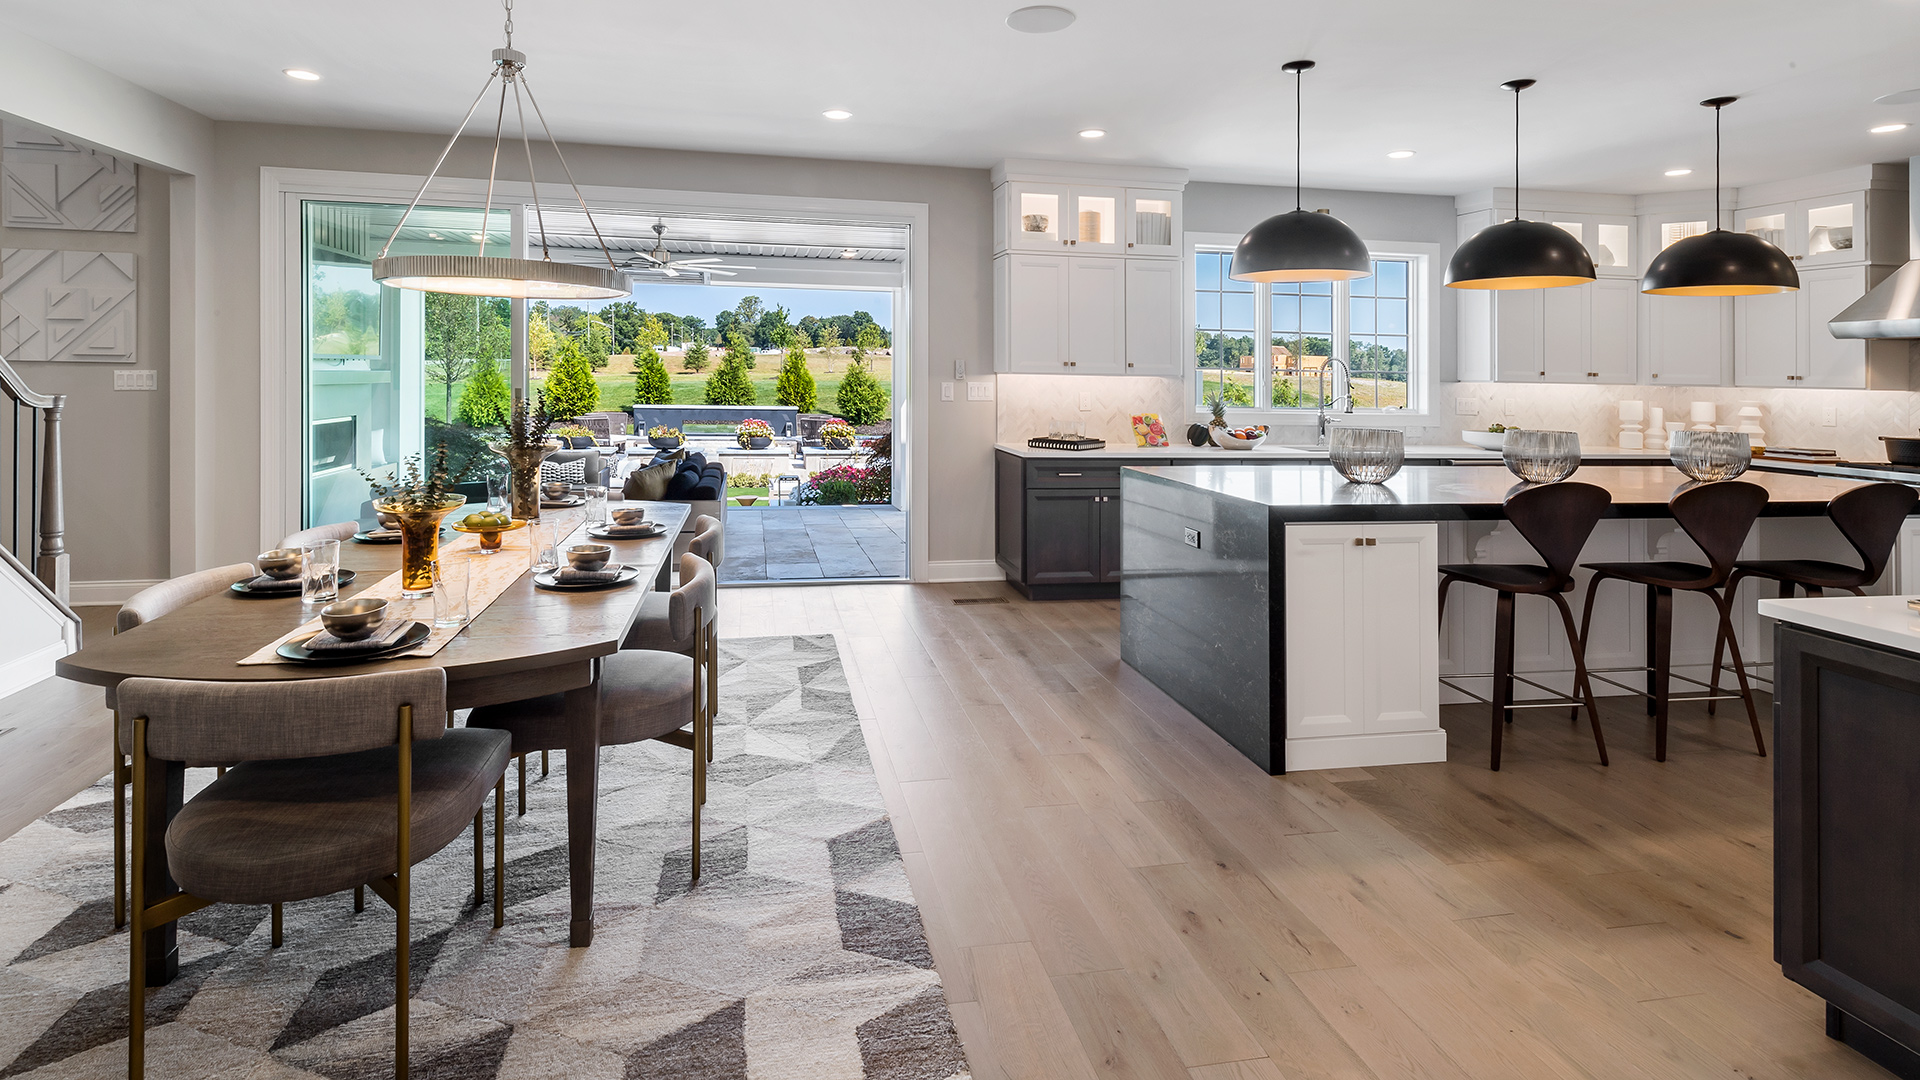 Kitchen and dining area overlooking the welcoming outdoor living space